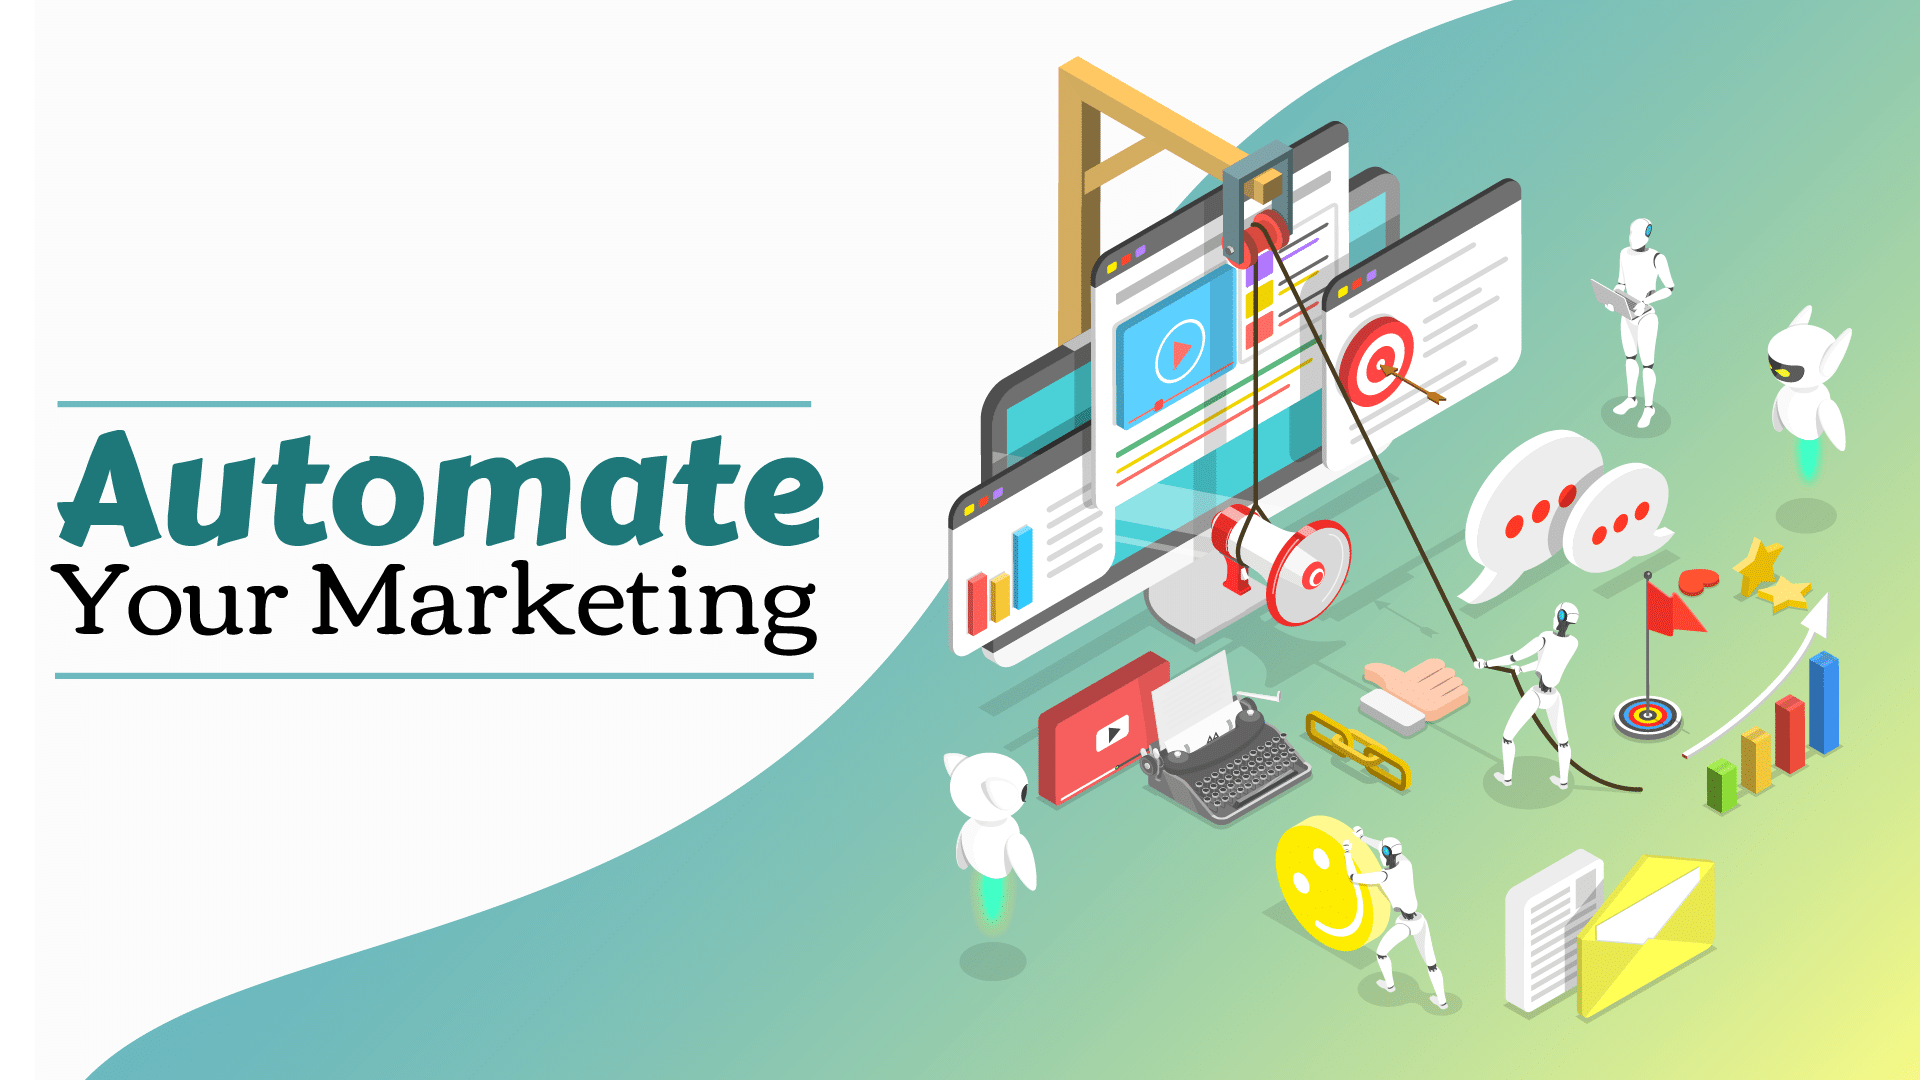 Automate-your-marketing-Facebook-Header